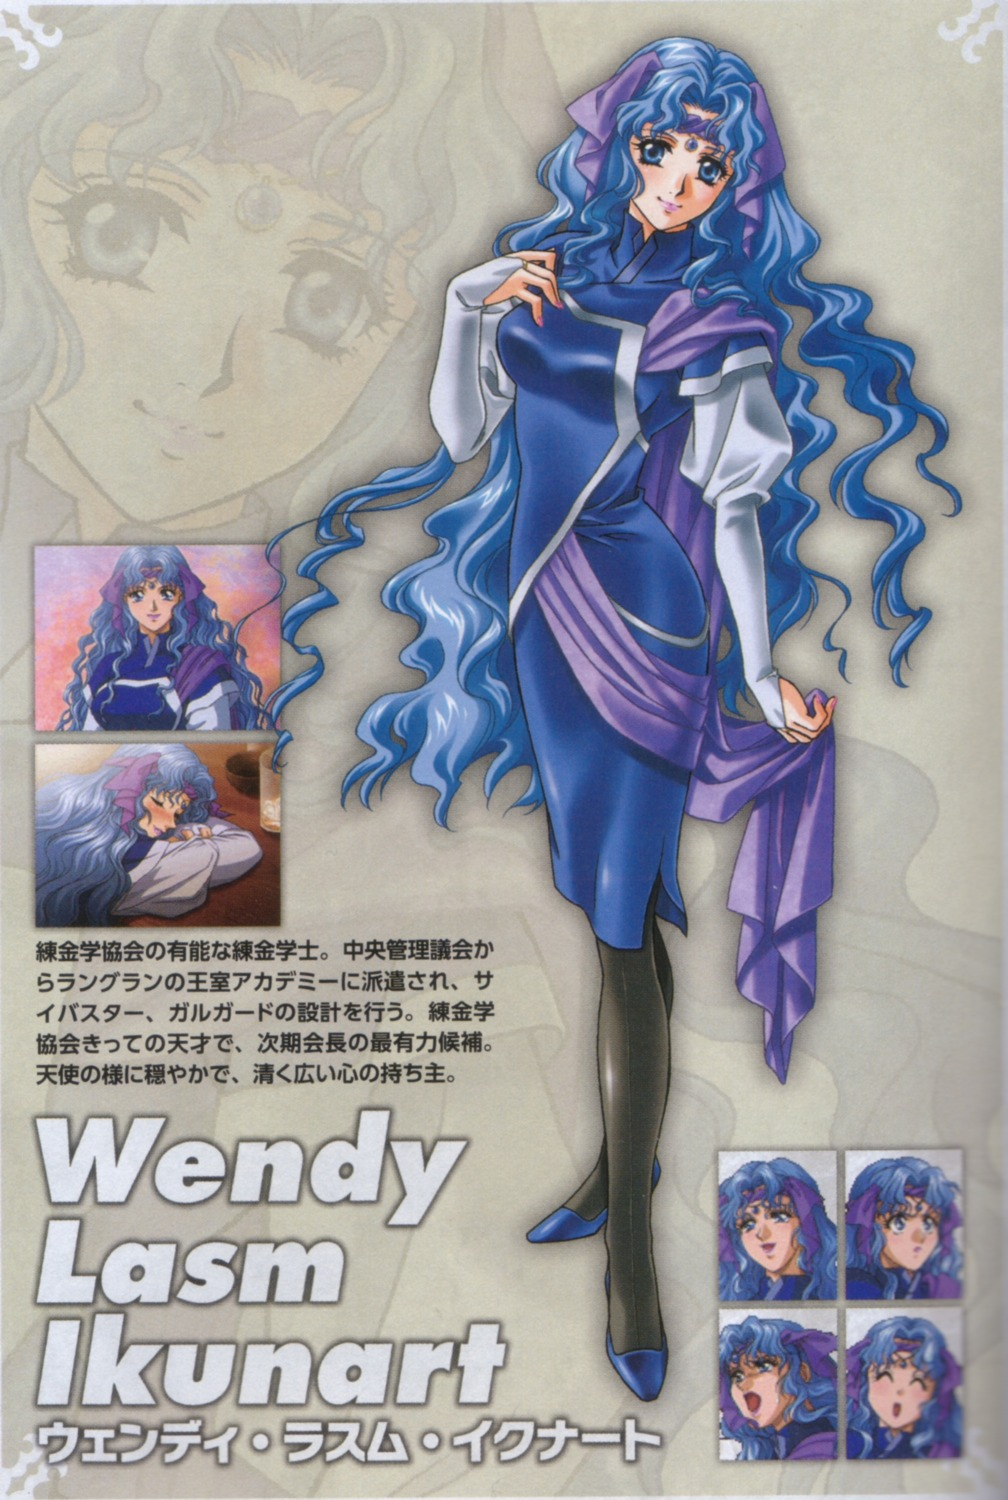 binding_discoloration dress kouno_sachiko pantyhose profile_page screening super_robot_wars wendy_lasm_ikunart